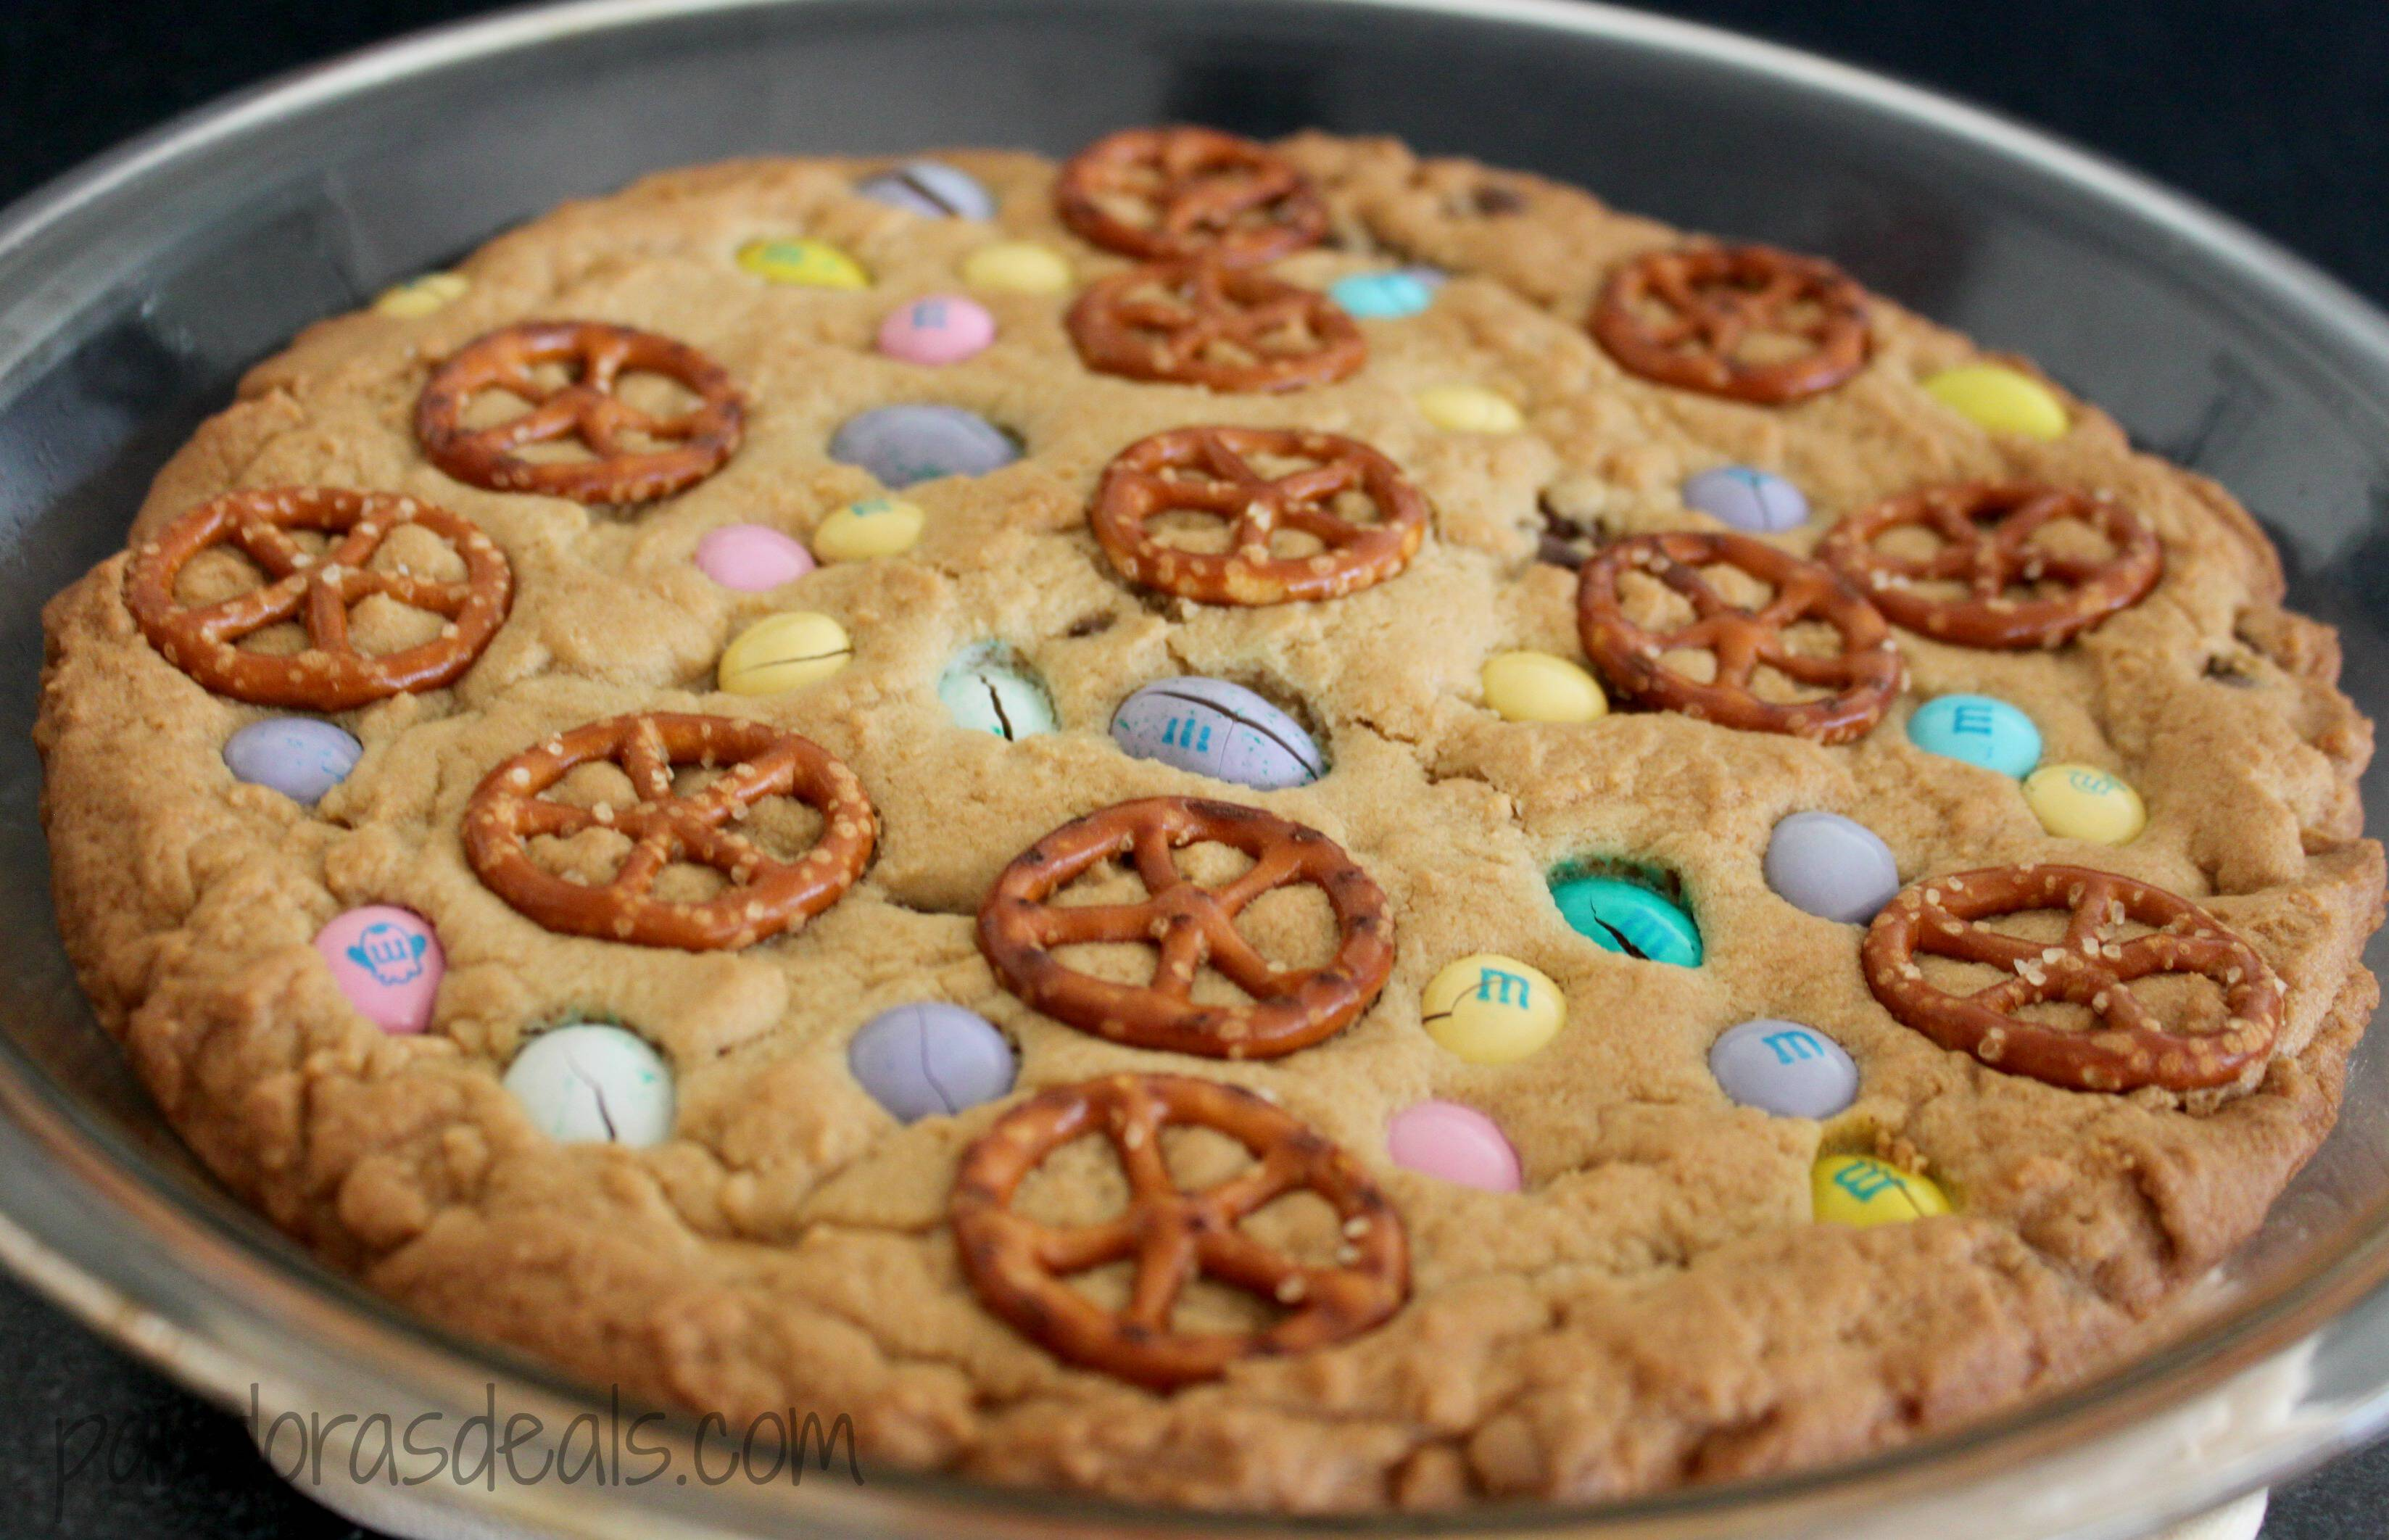 My kids absolutely love this recipe! I love it too because it's so easy. Here's the directions to make this tasty and pretty Easter Cookie Pie. Enjoy!